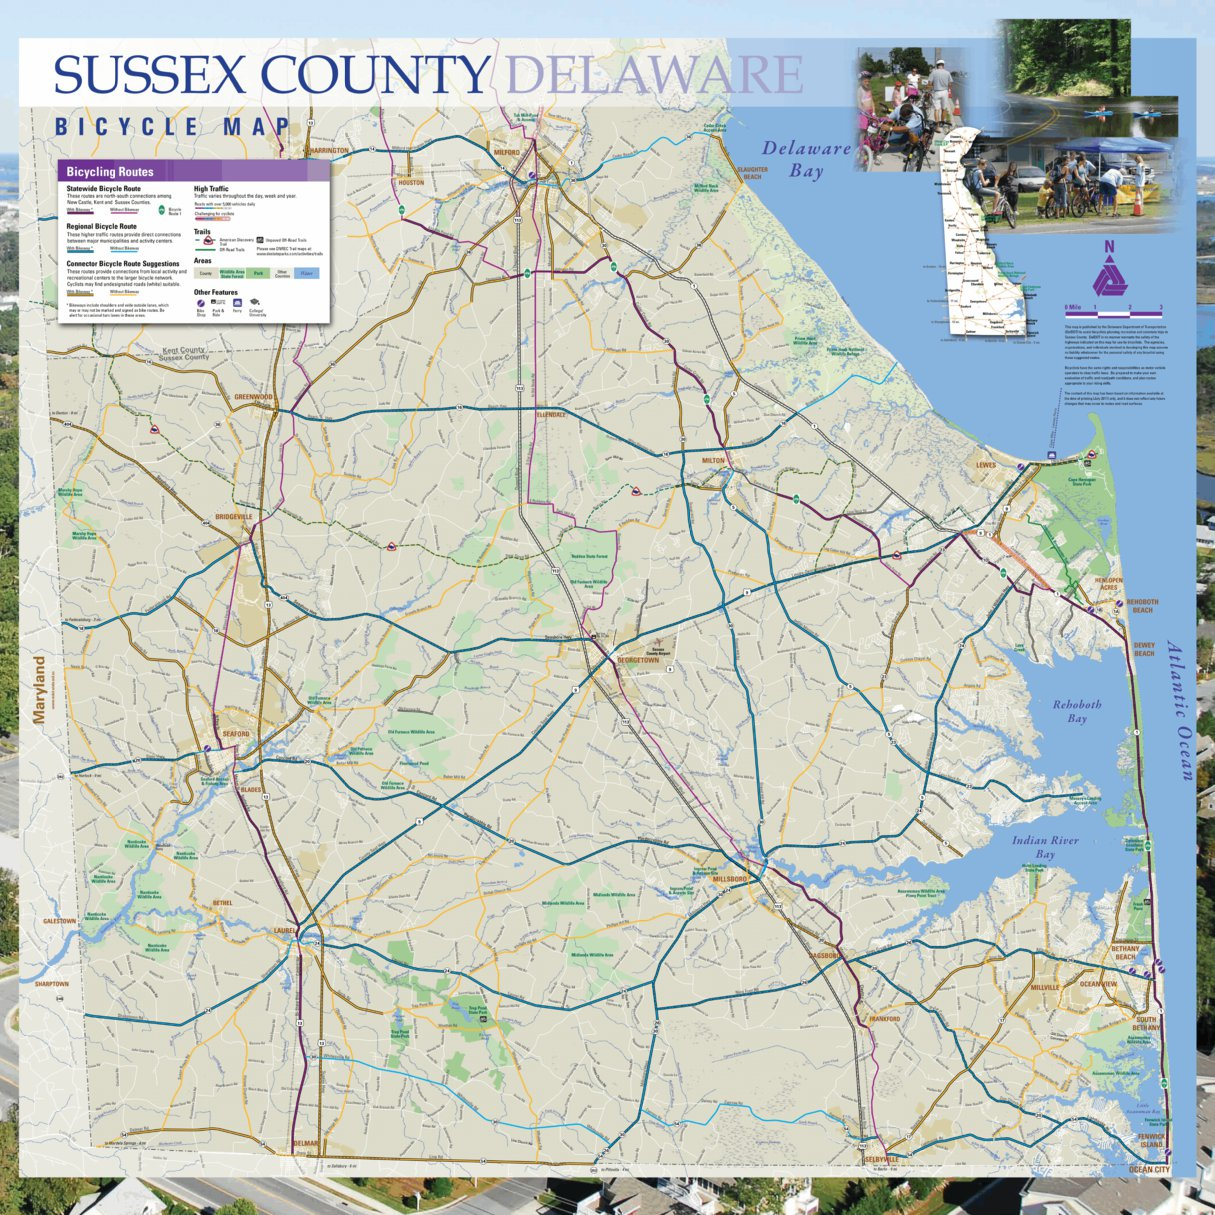 Delaware Traffic Map.Sussex County Delaware Bicycle Map Avenza Systems Inc Avenza Maps